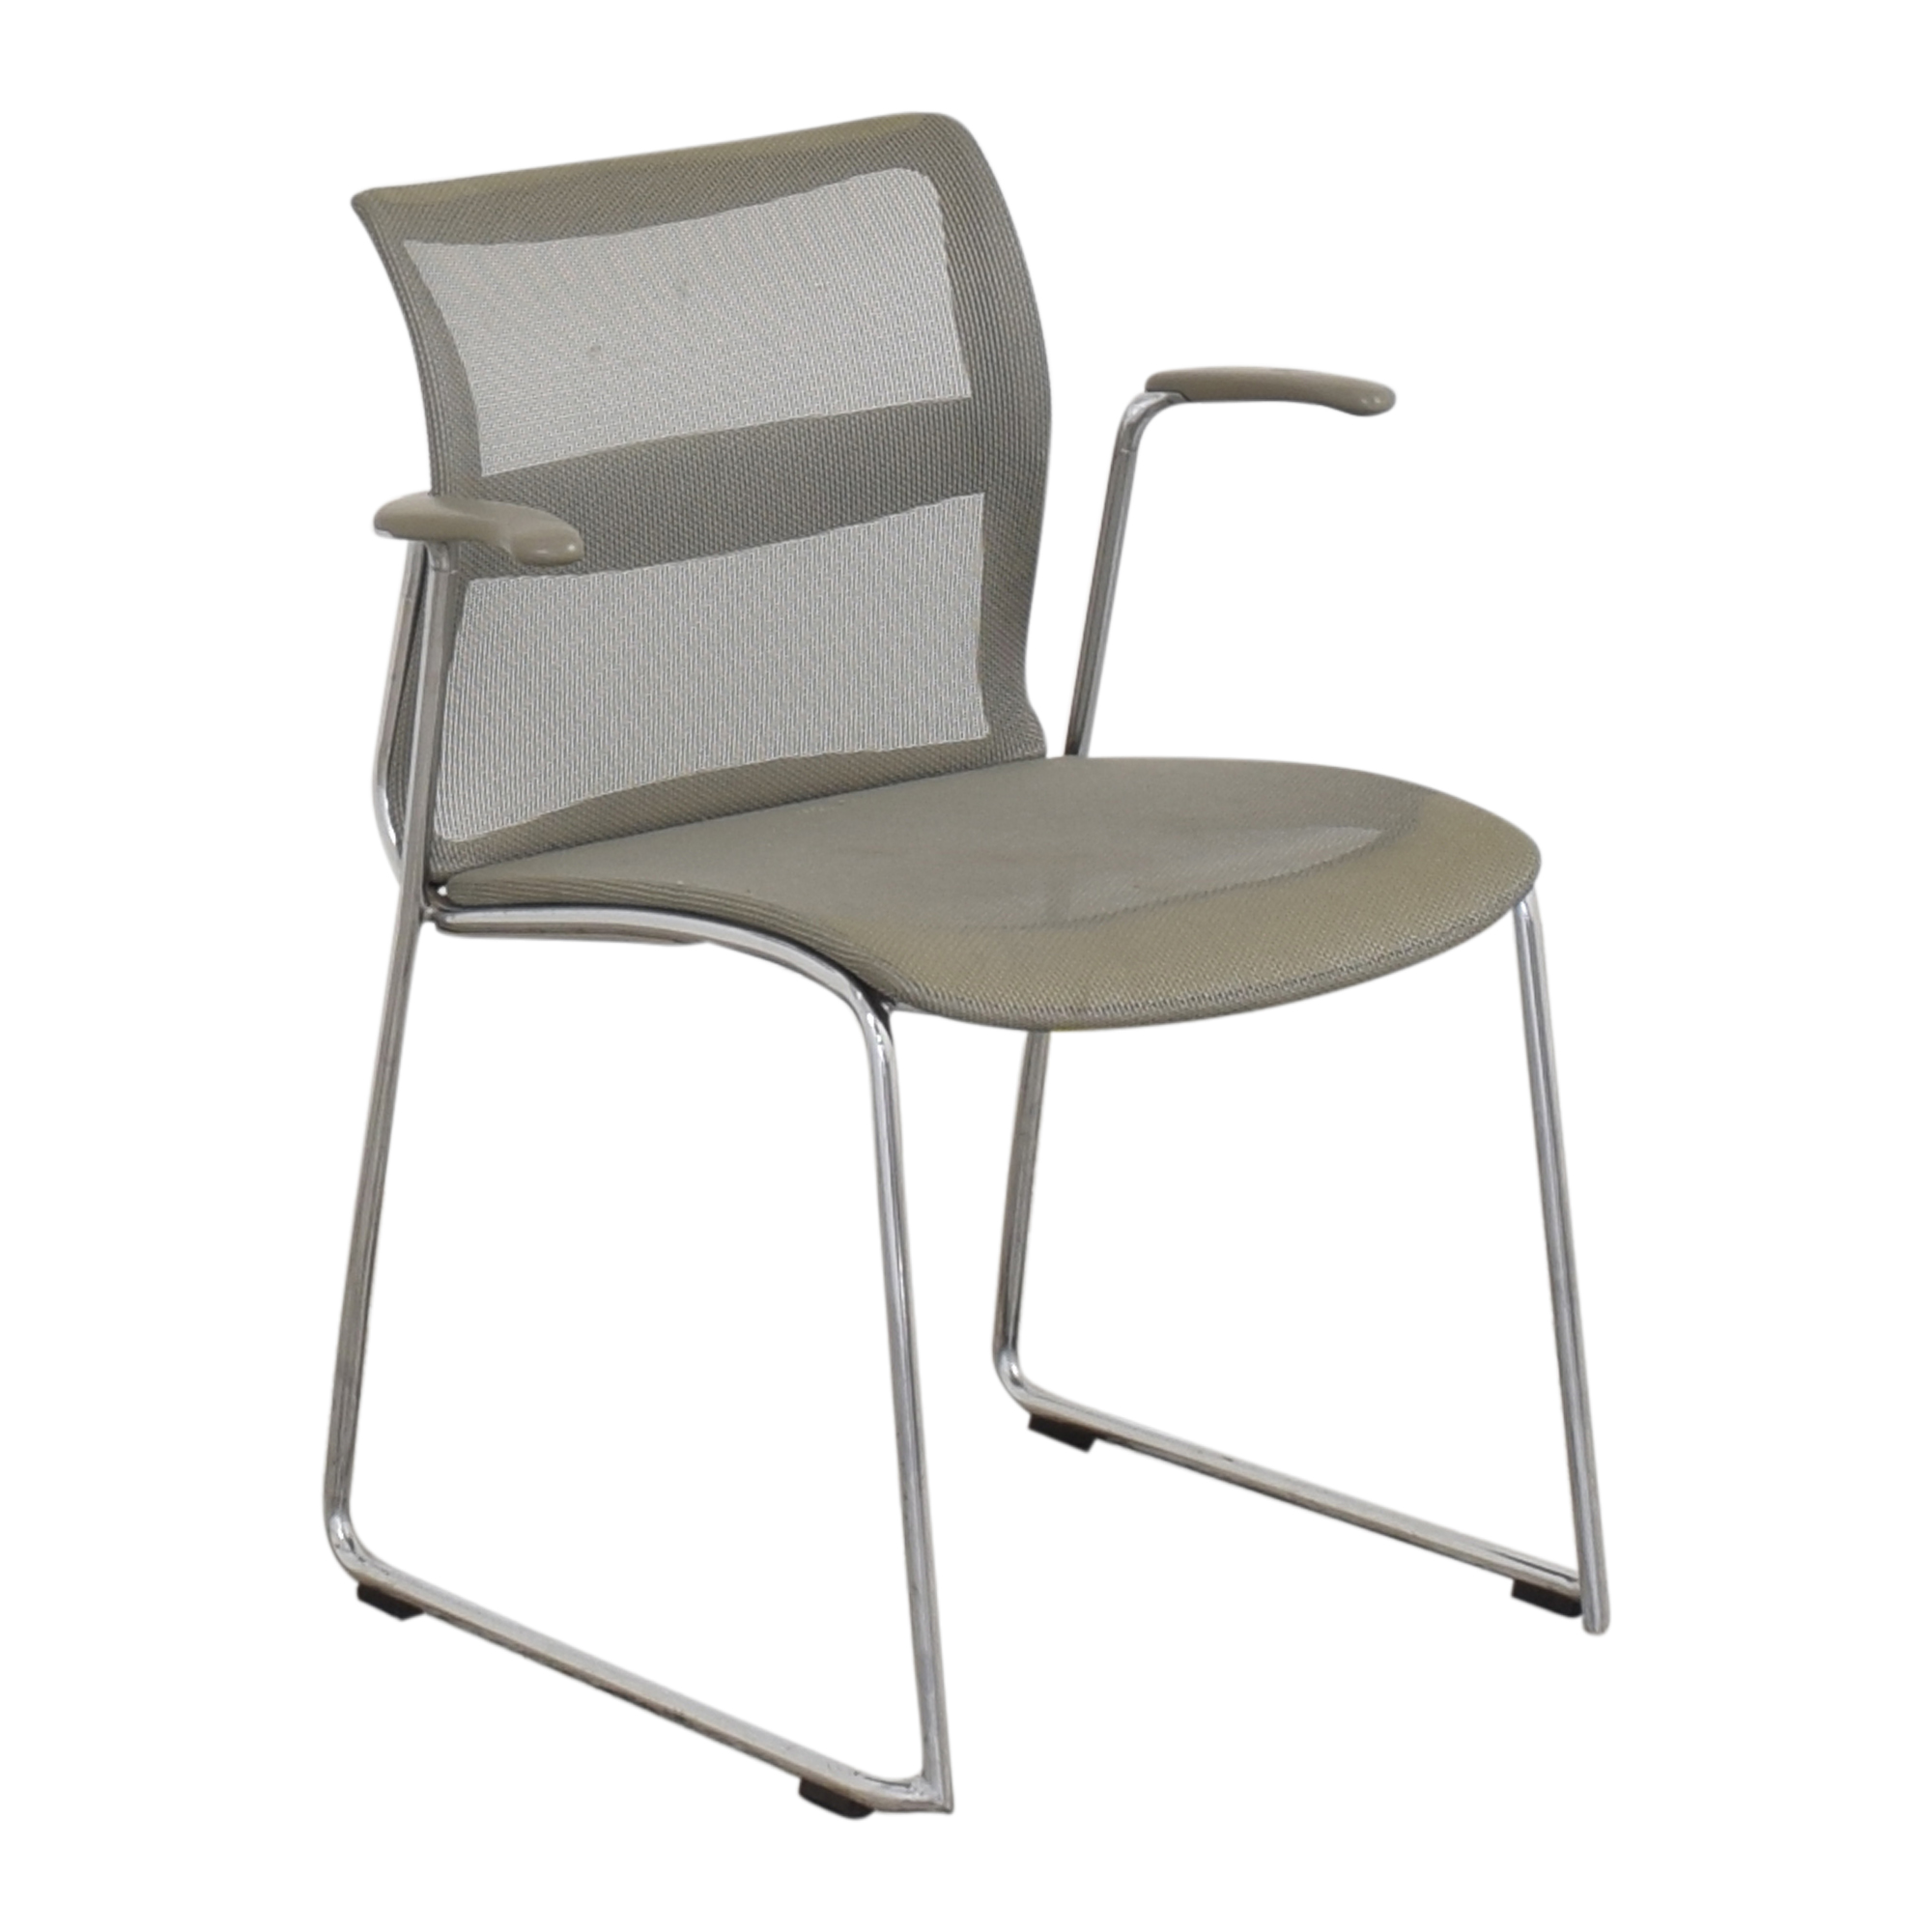 shop Stylex Stylex Zephyr Stacking Arm Chair online